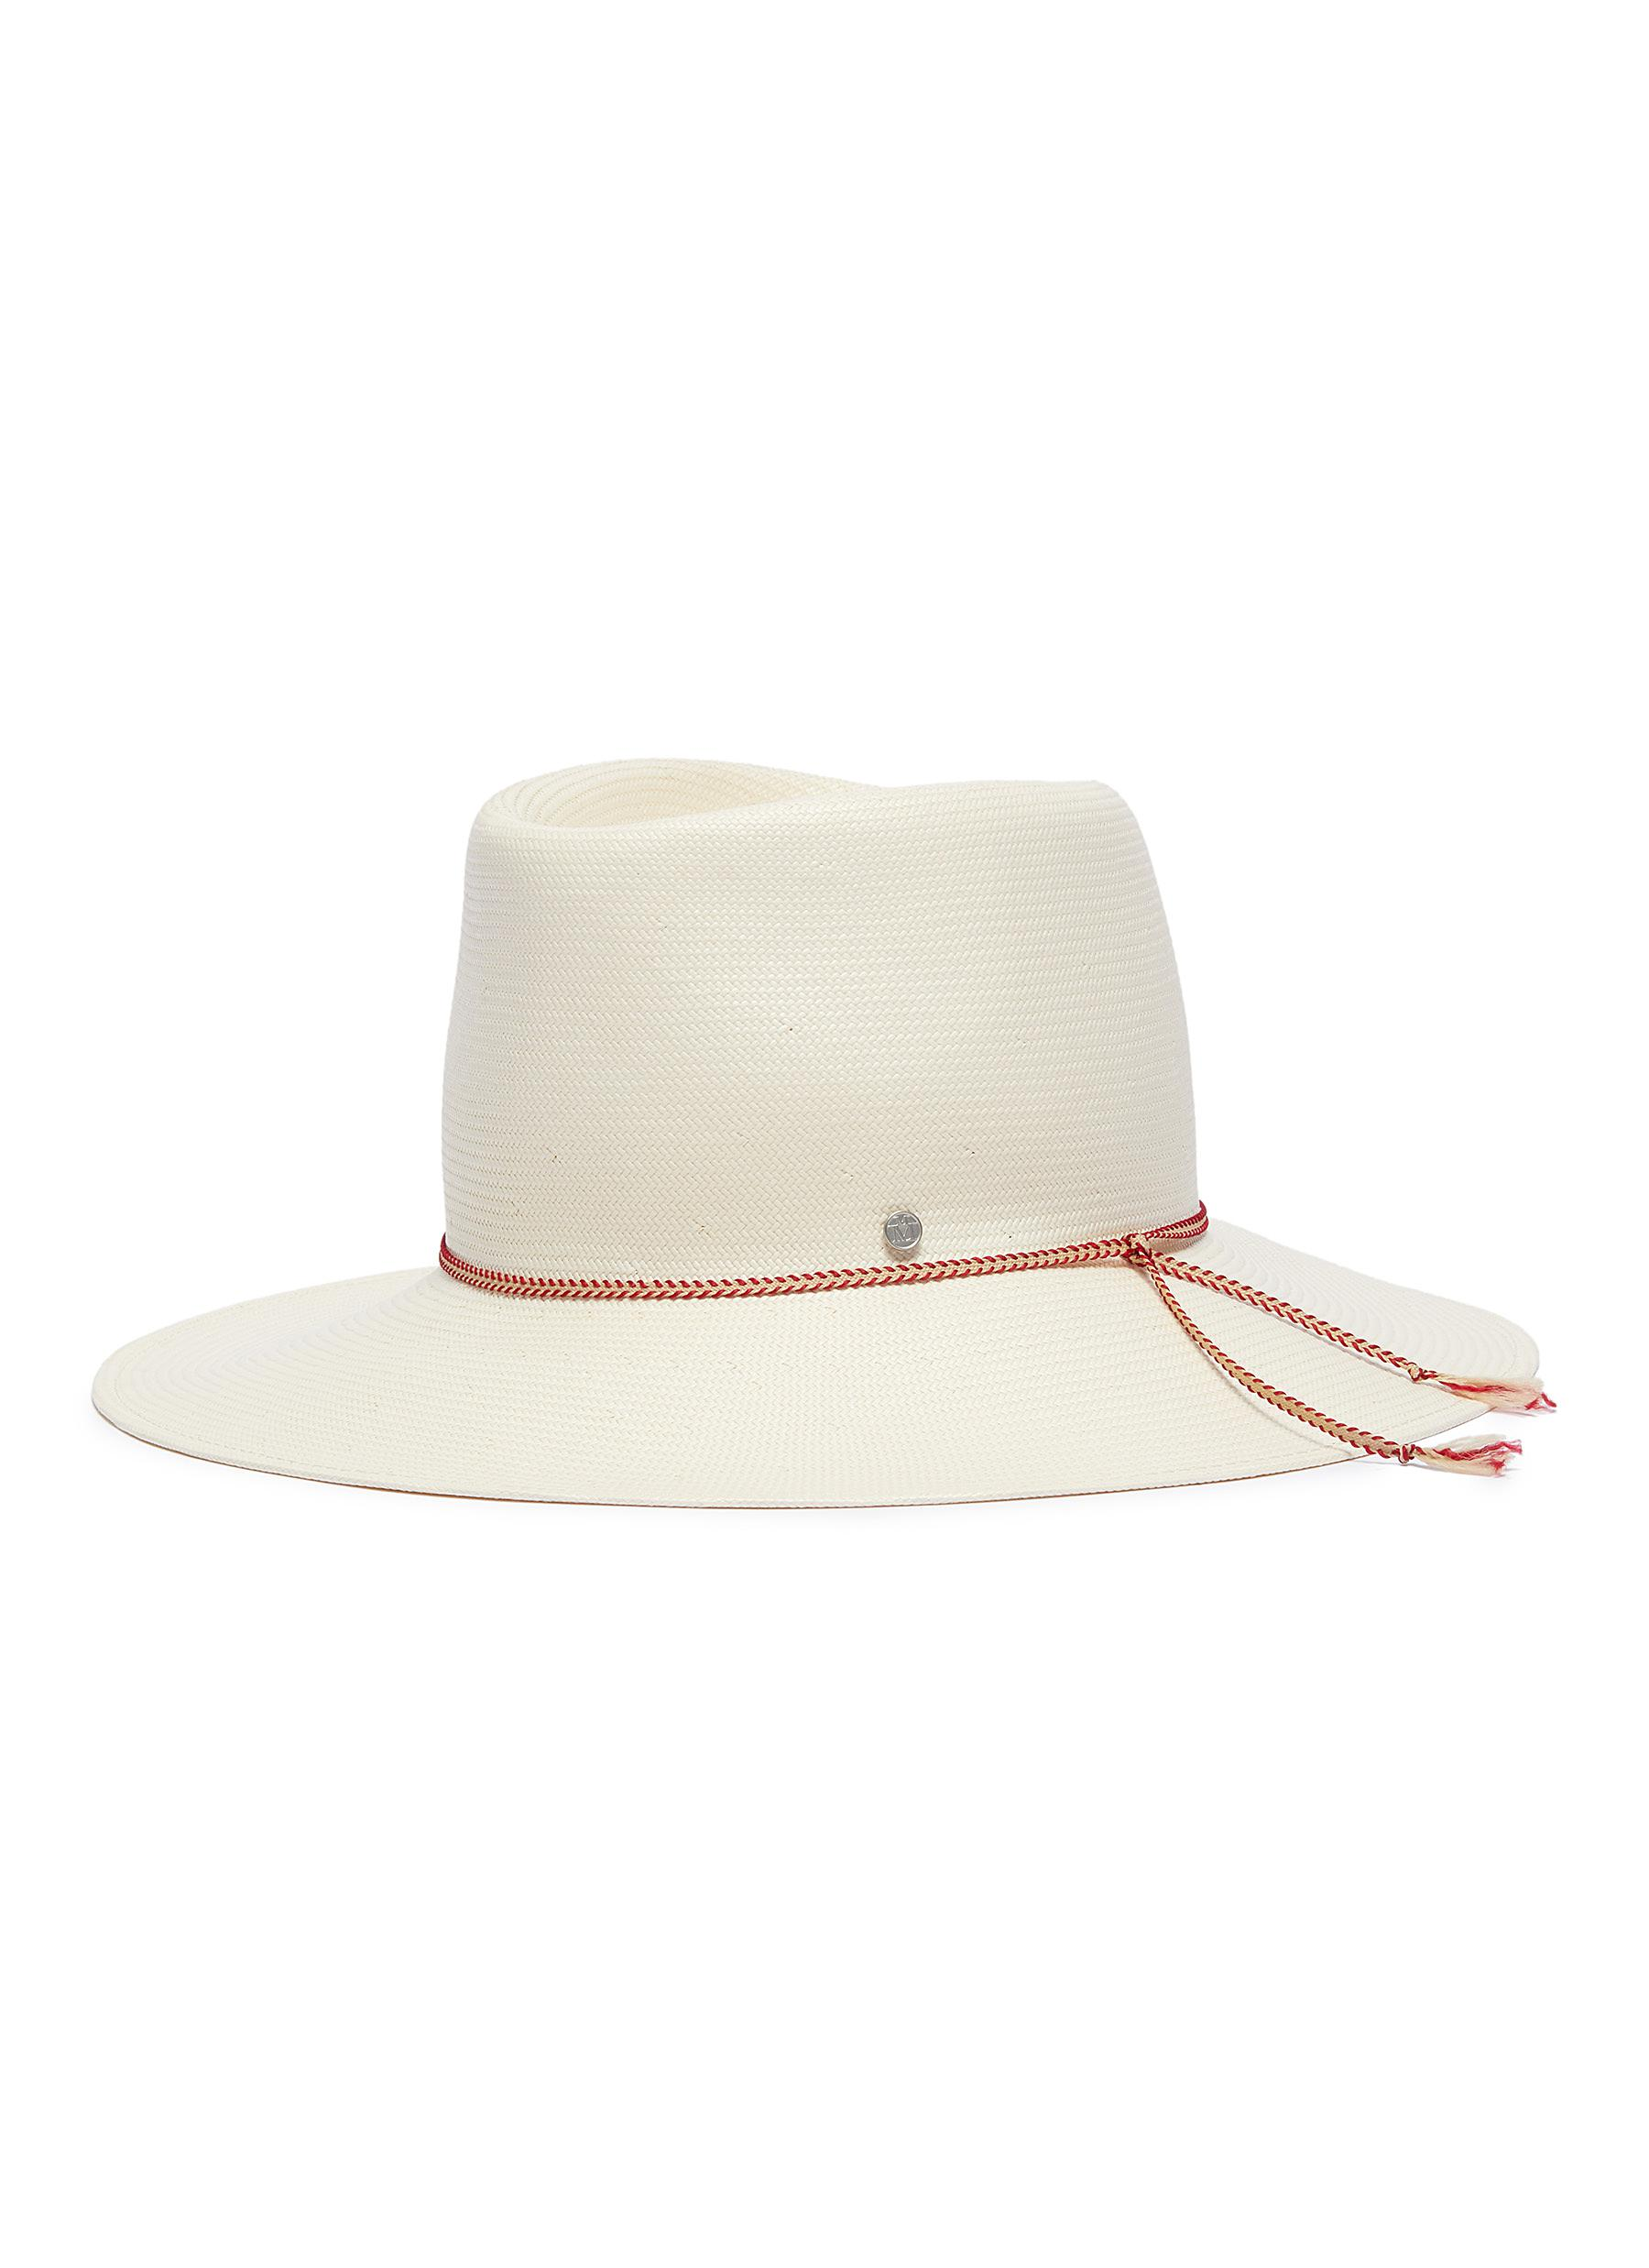 Maison Michel.  Charles  packable straw fedora hat 3bbb847448d